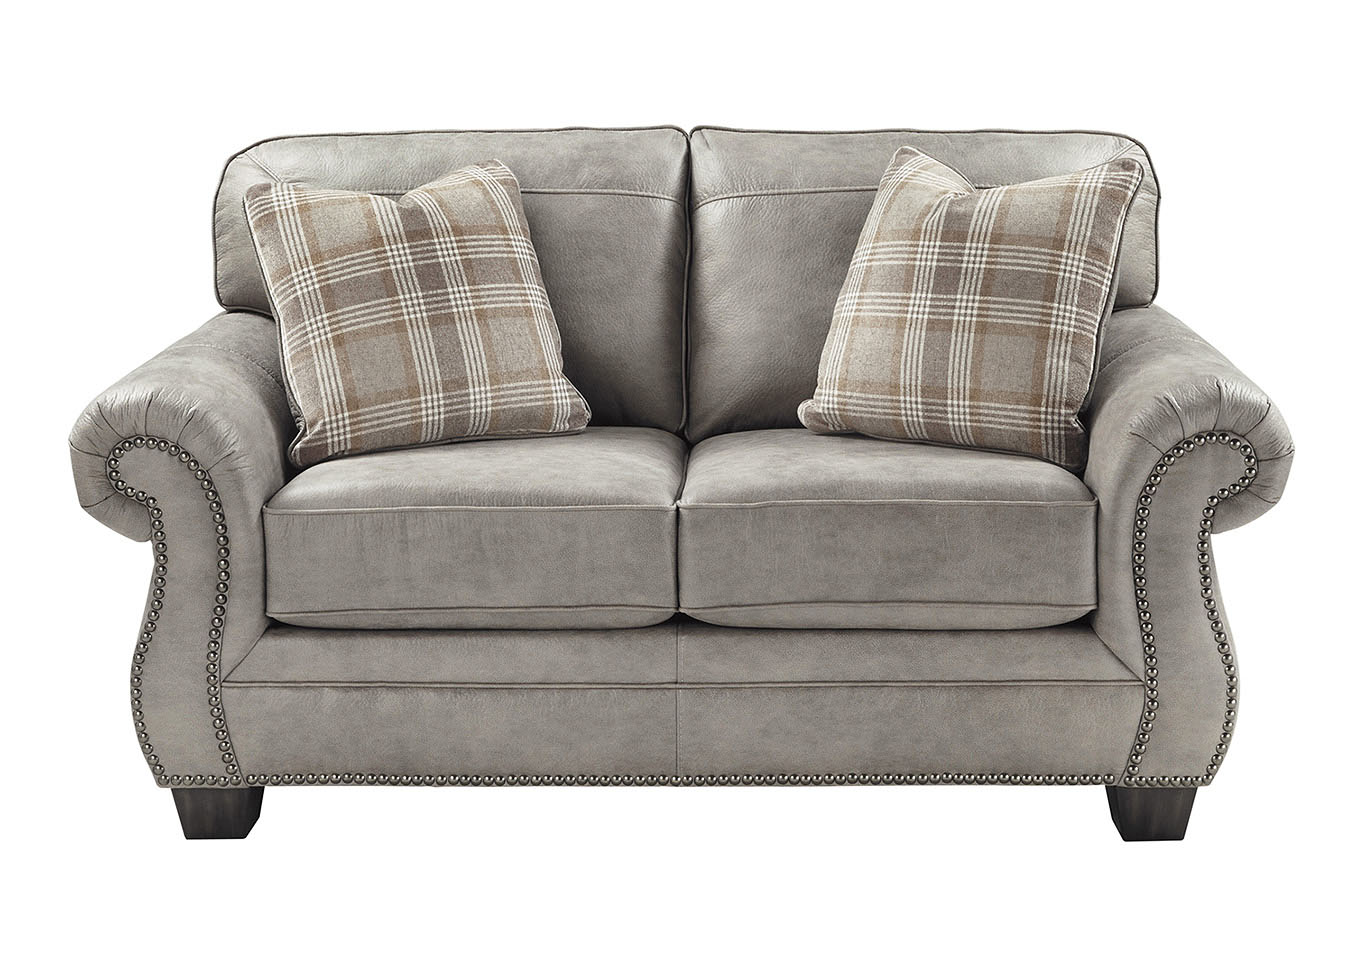 Olsberg Steel Loveseat,Signature Design By Ashley